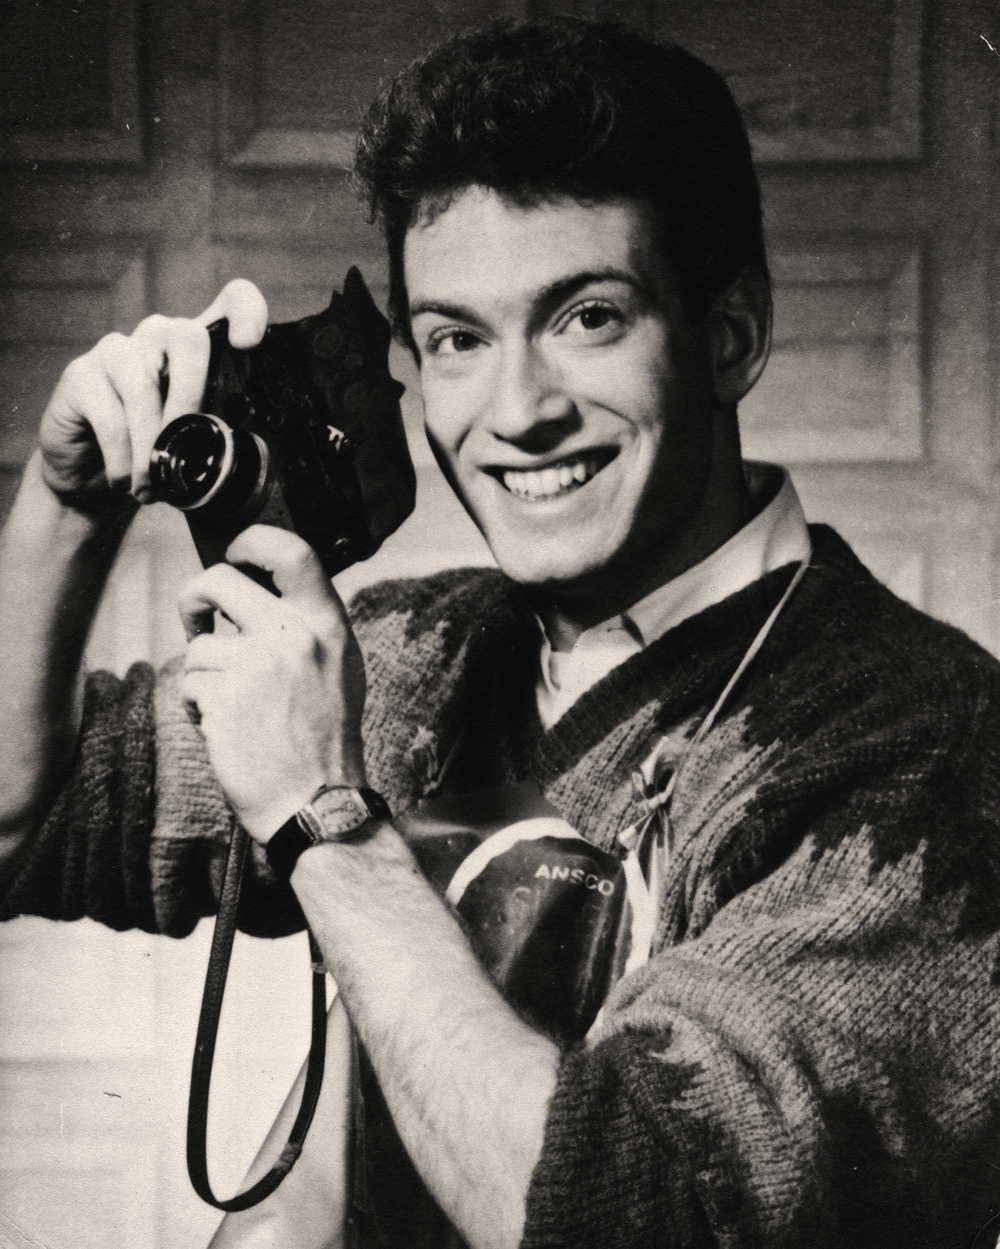 My dad as a young photographer in Passaic, NJ